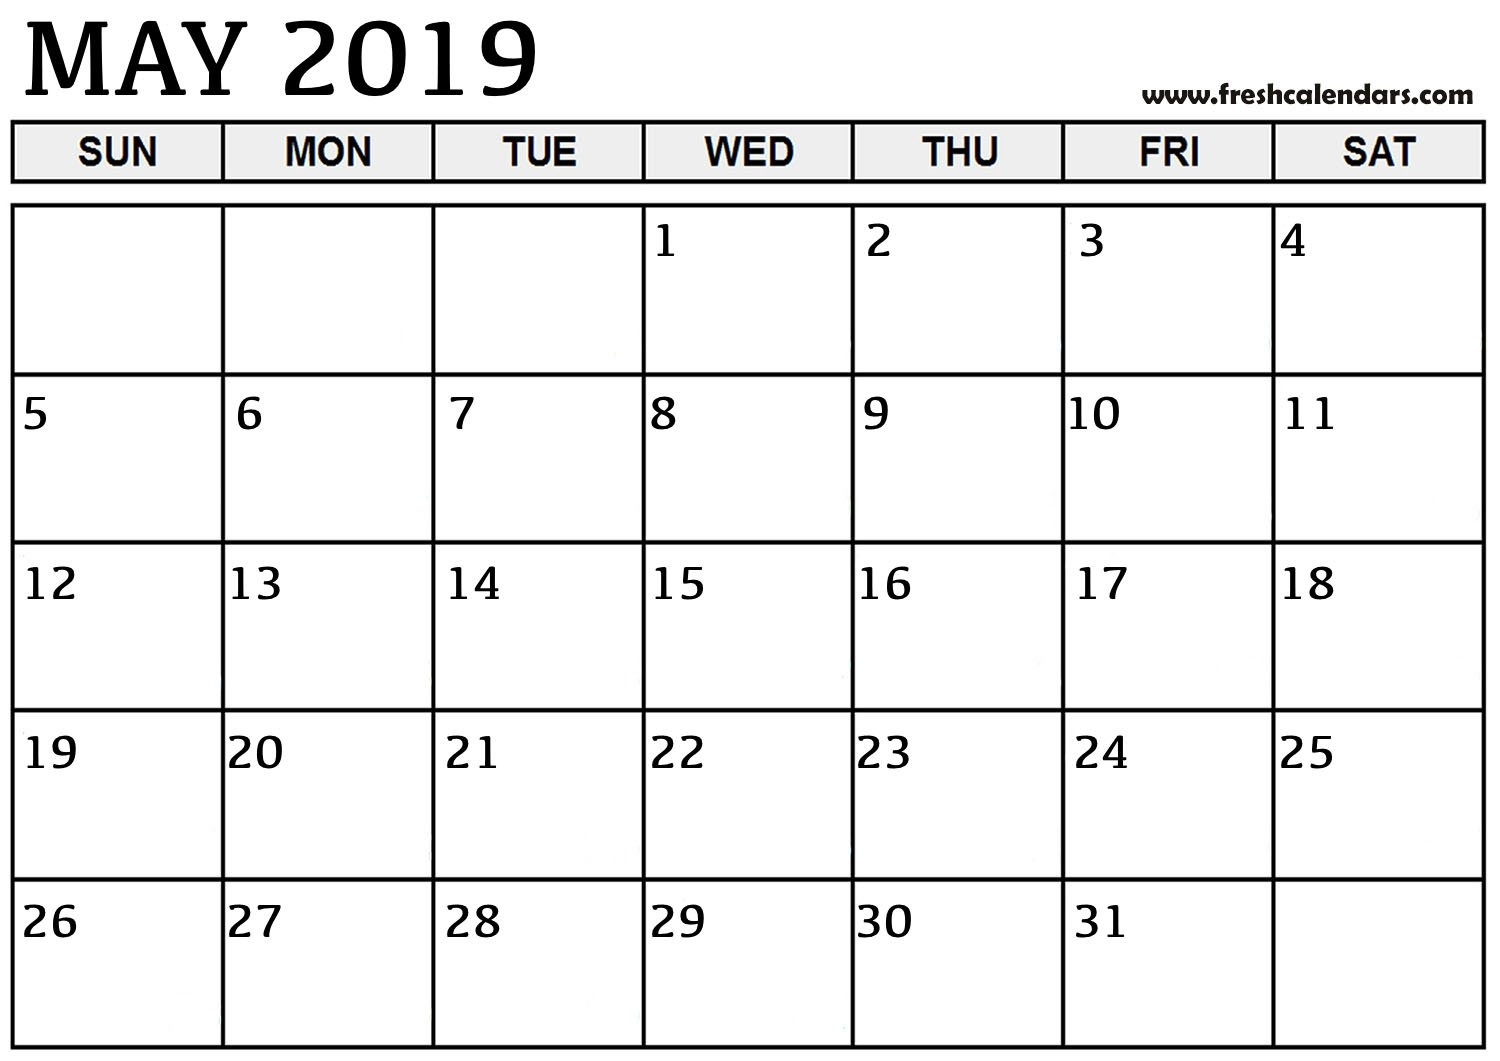 May 2019 Printable Calendars - Fresh Calendars Calendar 2019 May